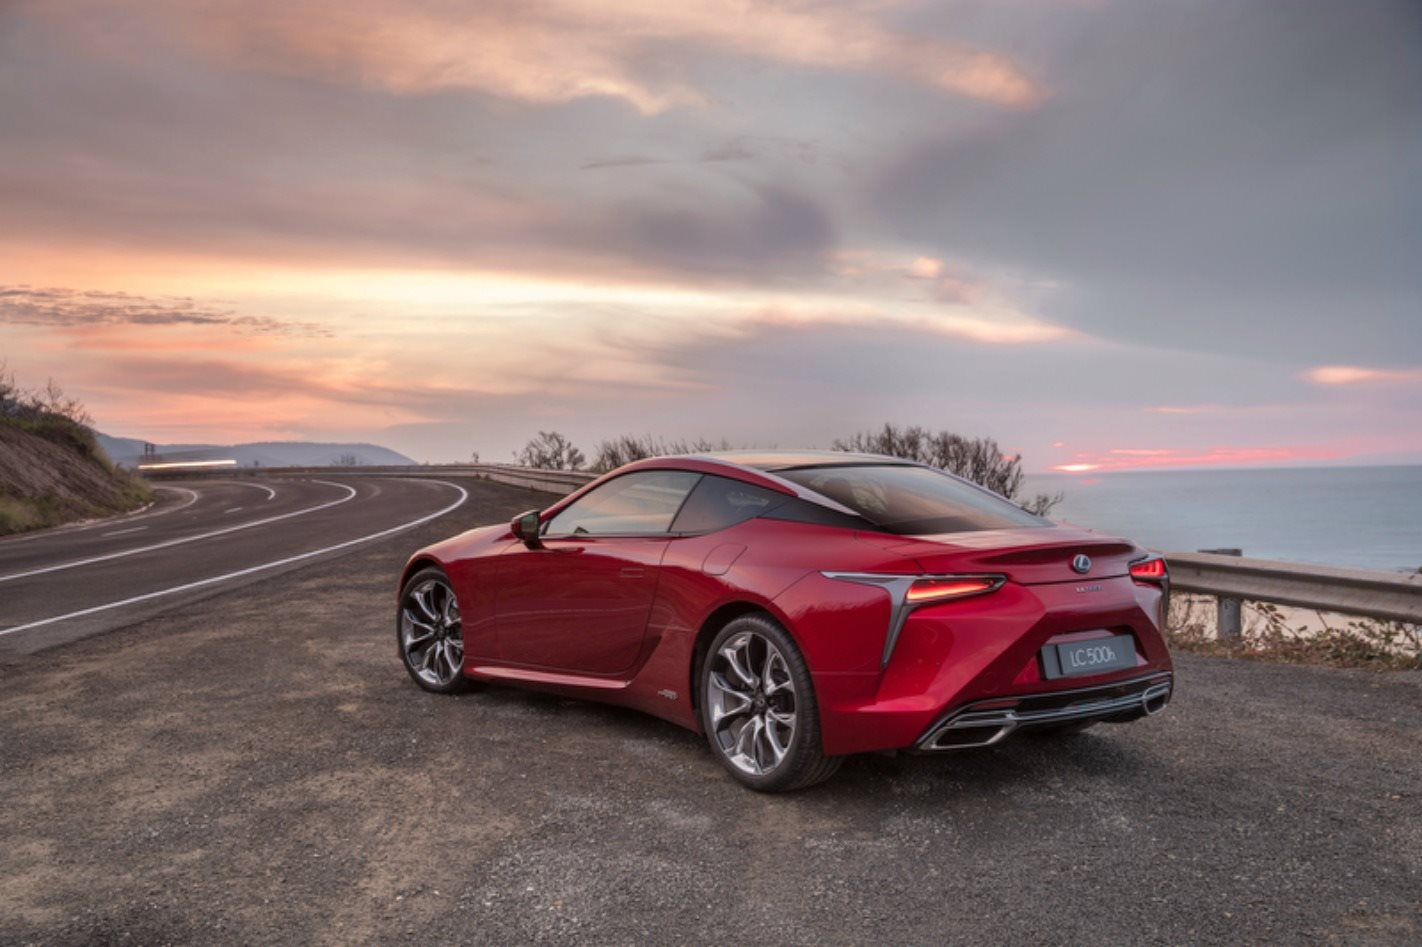 2018 Lexus LC 500 rear static